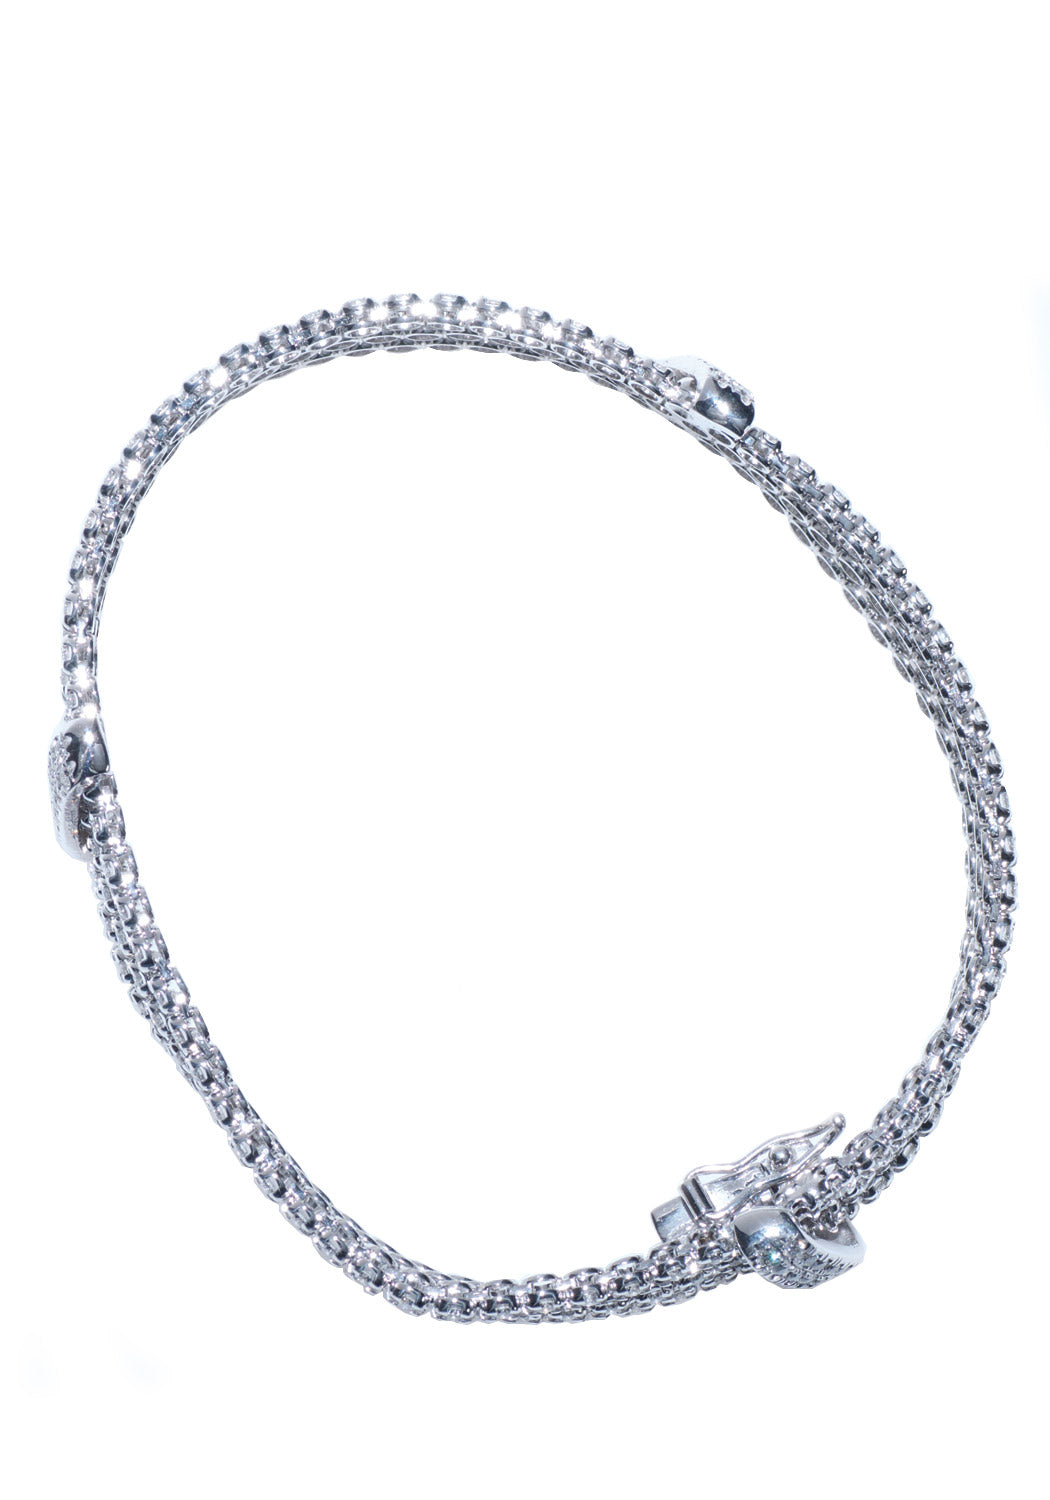 A Link White Gold Diamond Pave Bracelet